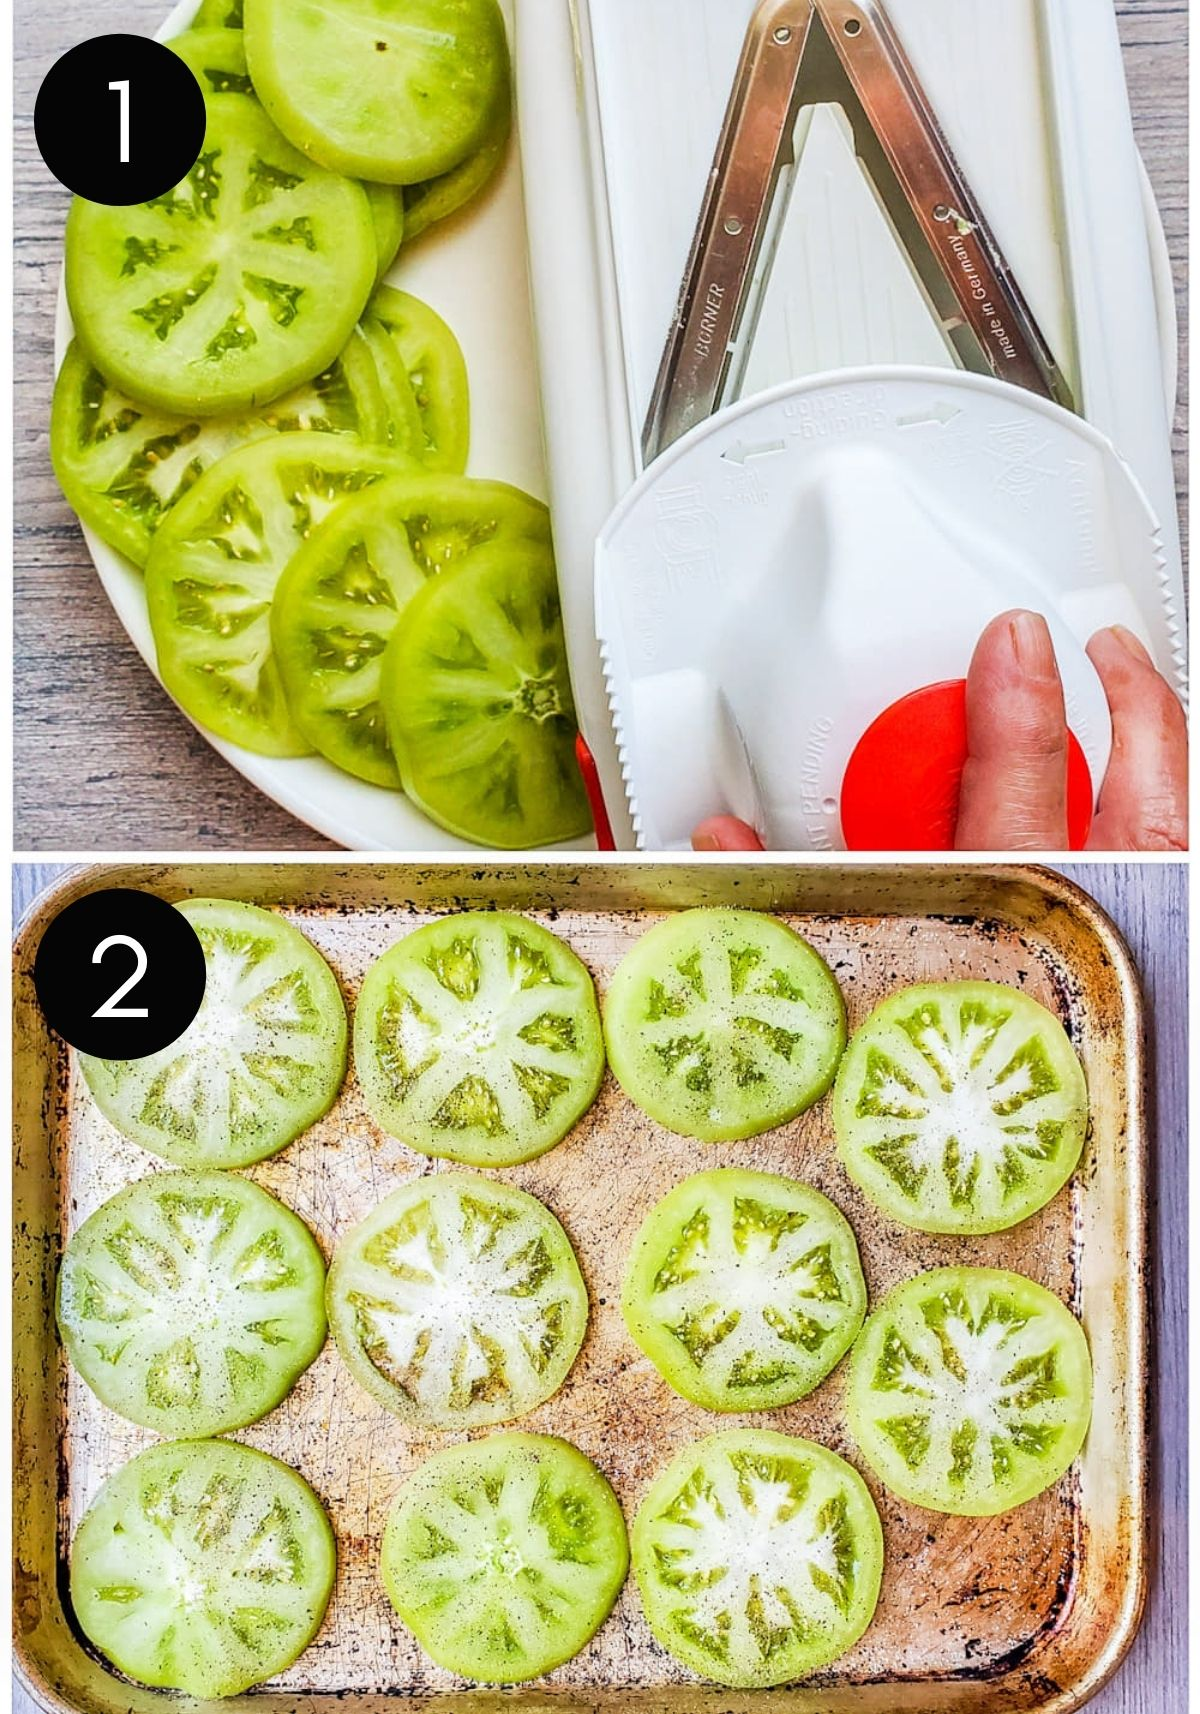 Green tomatoes being sliced with mandolin and seasoned.